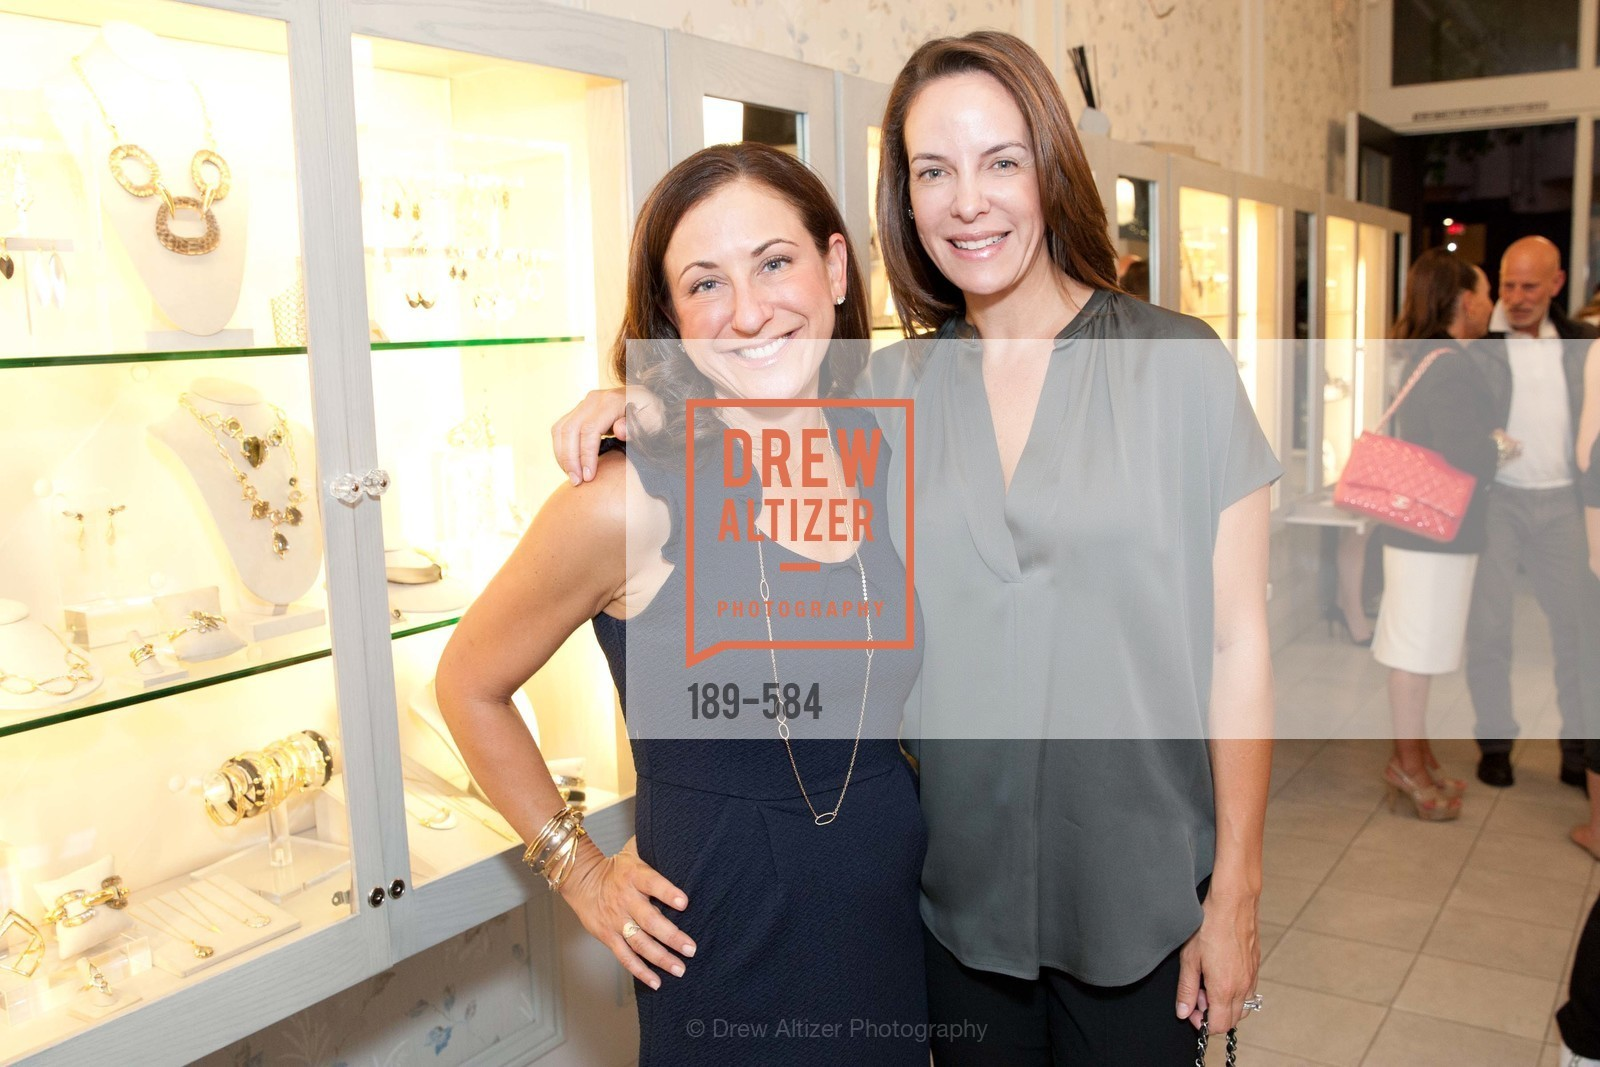 Victoria Dade, Julie Veronese, Alexis Bittar Event; Support of the San Francisco Fall Antique Show Benefitting Enterprise for High School Students Francisco Fall Antique Show, benefiting Enterprise for High School Students, US, October 2nd, 2014,Drew Altizer, Drew Altizer Photography, full-service agency, private events, San Francisco photographer, photographer california